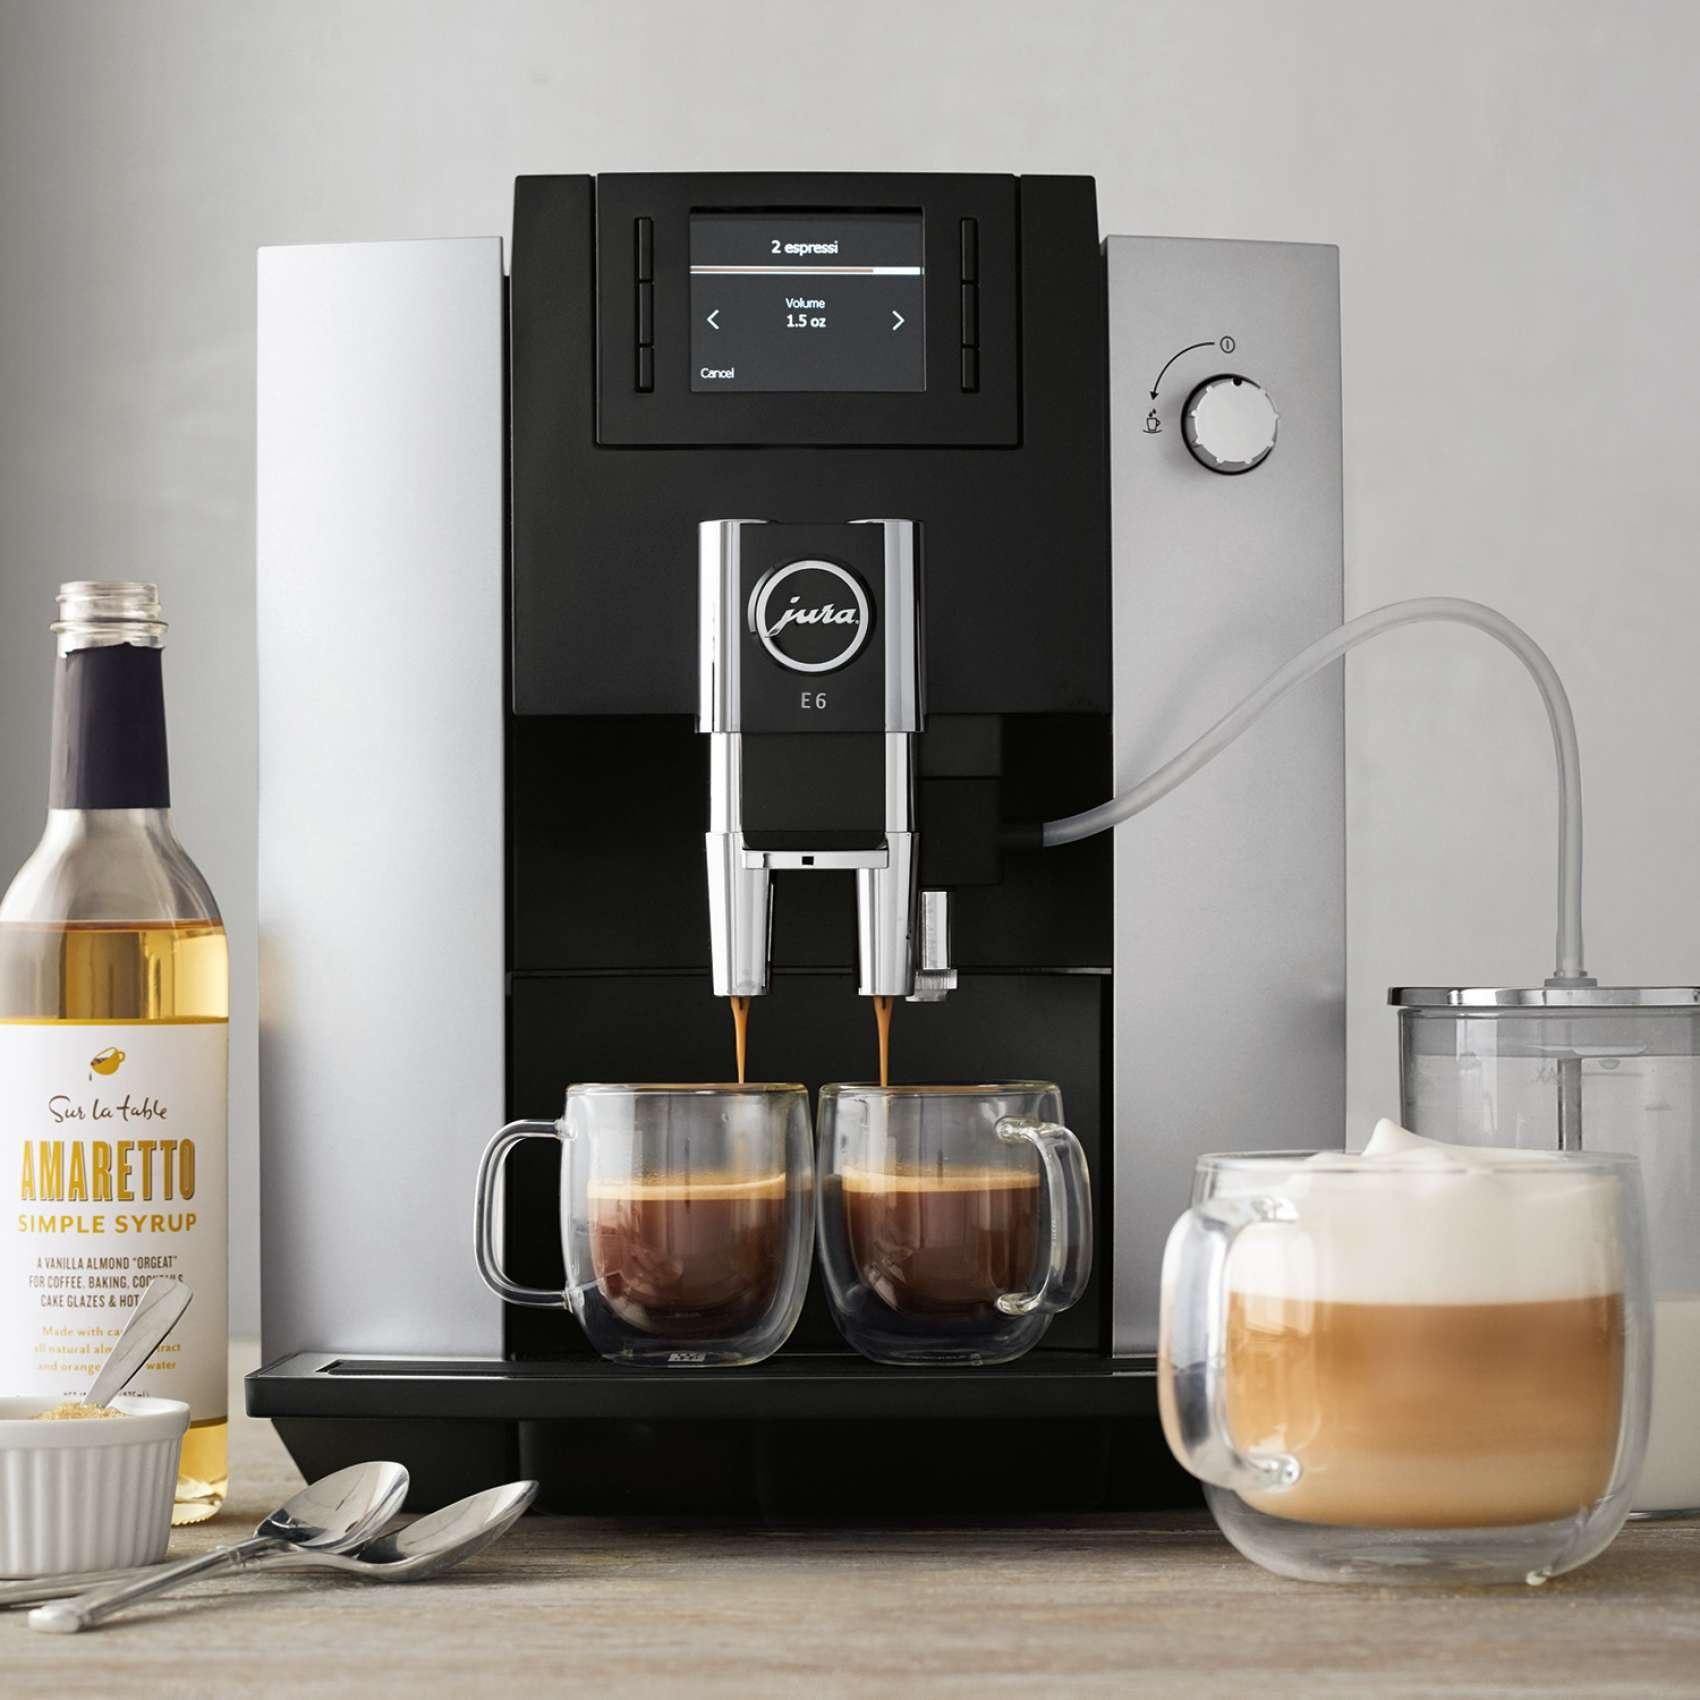 JURA E6 Automatic Coffee Machine Sur La Table in 2020